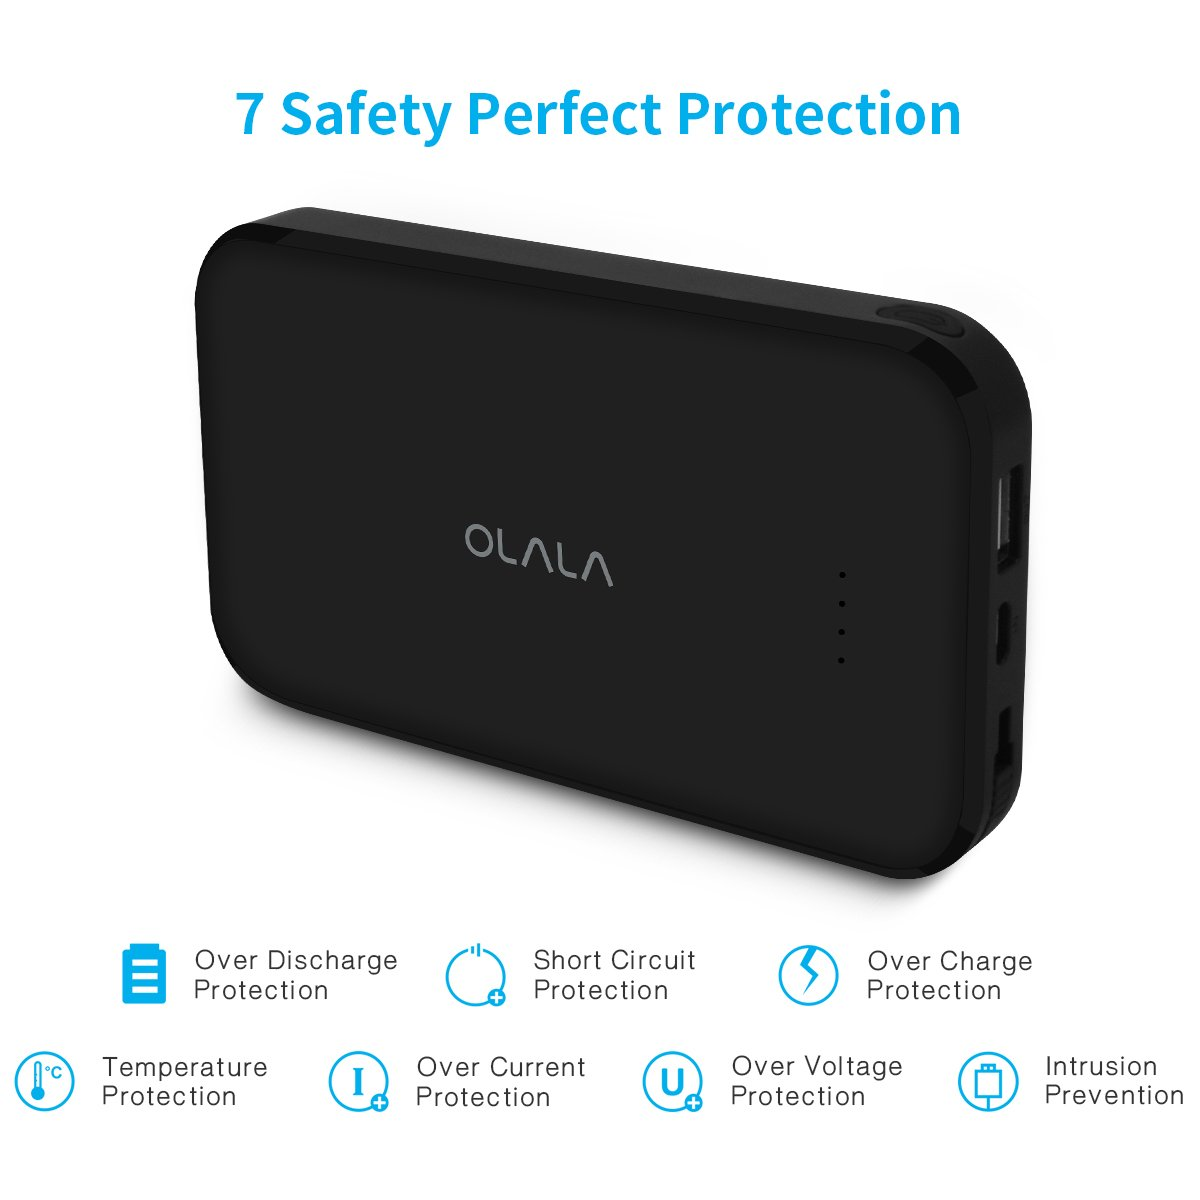 Apple Mfi Certified Olala S100 I 13000mah Portable Mobile Phone And Ipod Battery Charger Circuit Power Bank Built In Lightning Cable Dual Output Iphone X 8 Plus Ipad Samsung Black Cell Phones Accessories